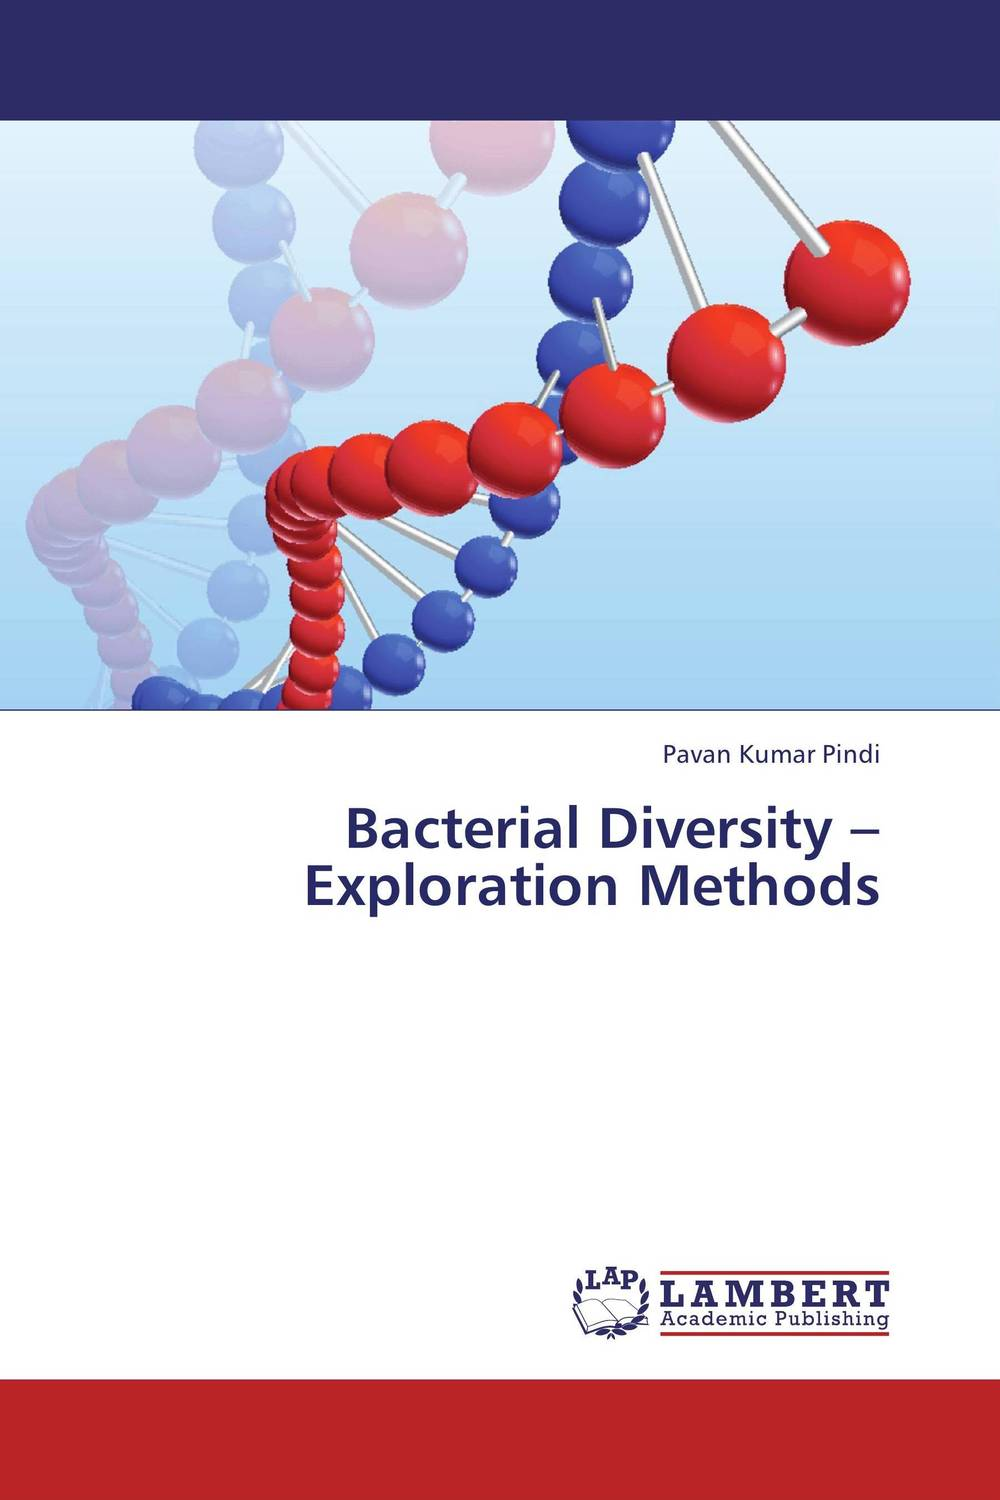 Bacterial Diversity – Exploration Methods analysis of bacterial colonization on gypsum casts